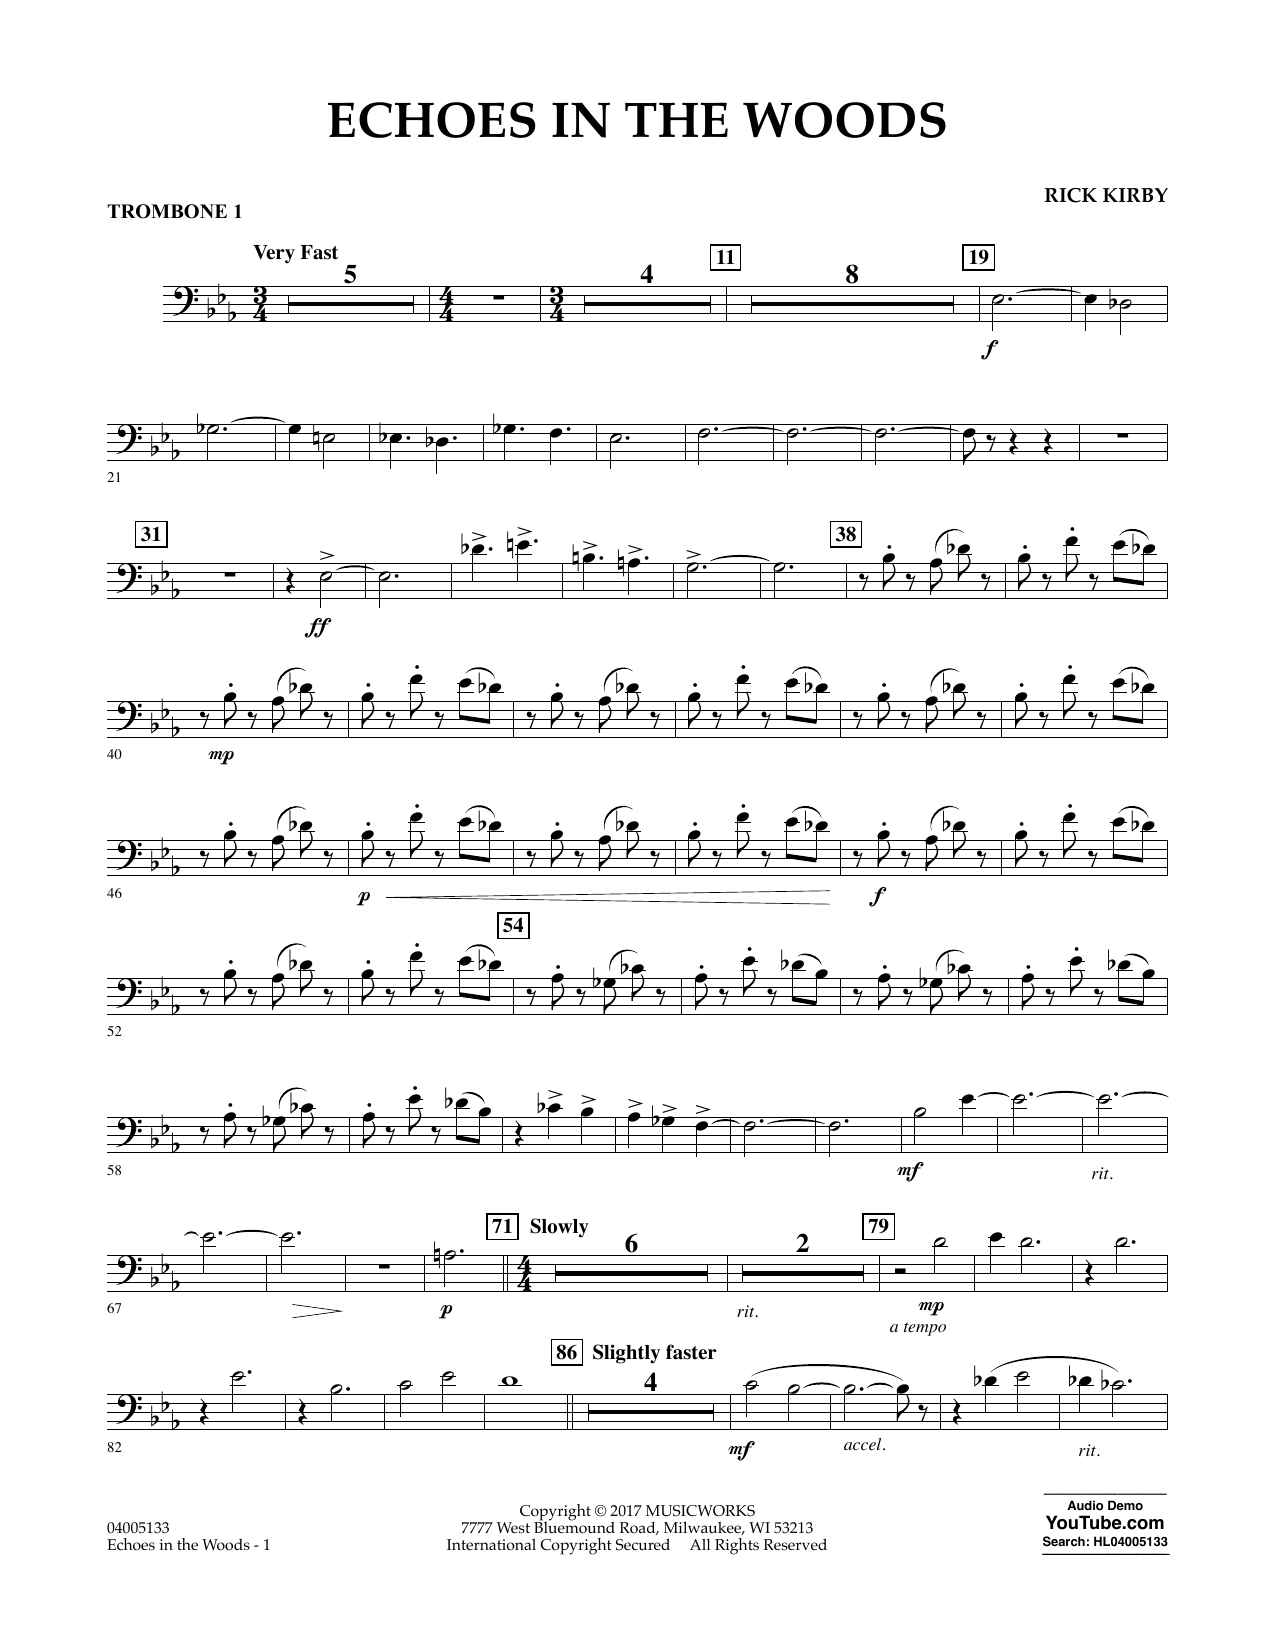 Echoes in the Woods - Trombone 1 Sheet Music